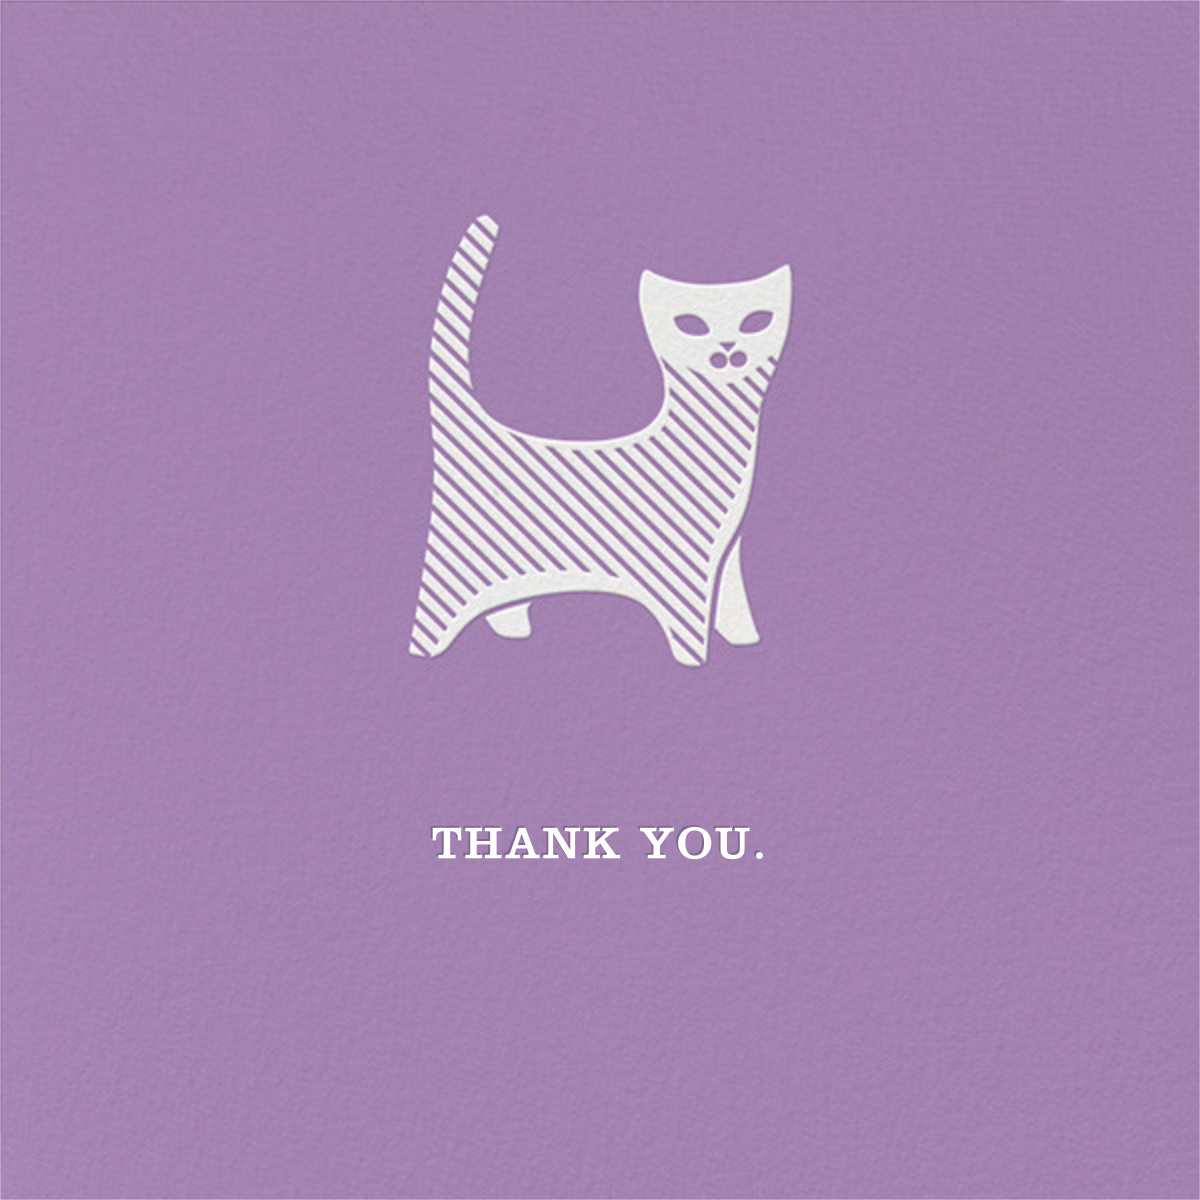 Kittie - Jonathan Adler - Thank you